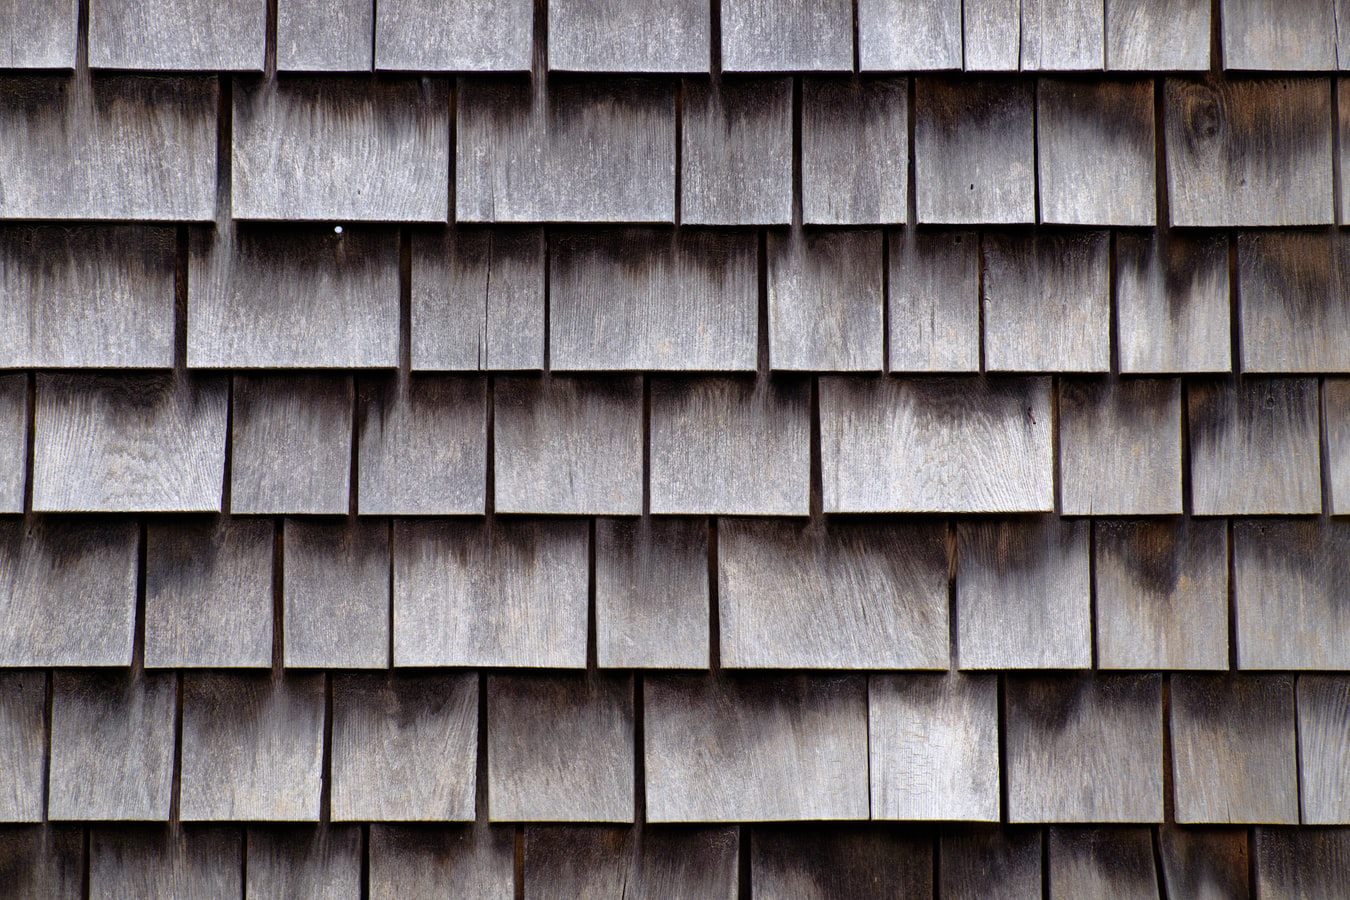 How Much does a bungle of shingles weigh for single disposal